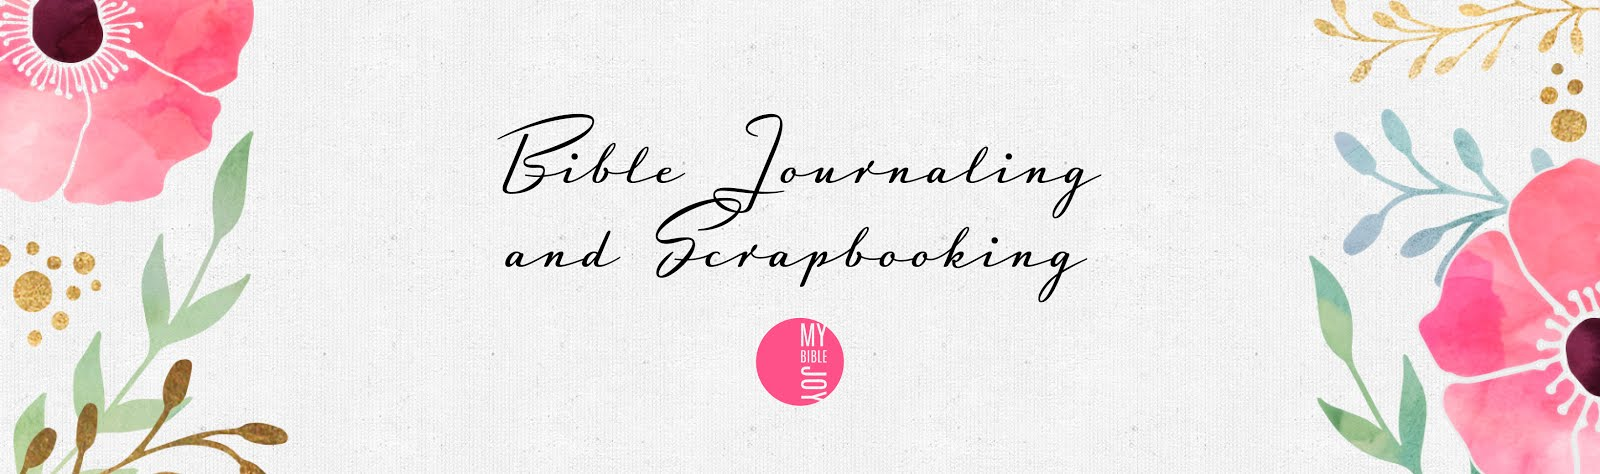 My Bible Joy | Bible Journaling